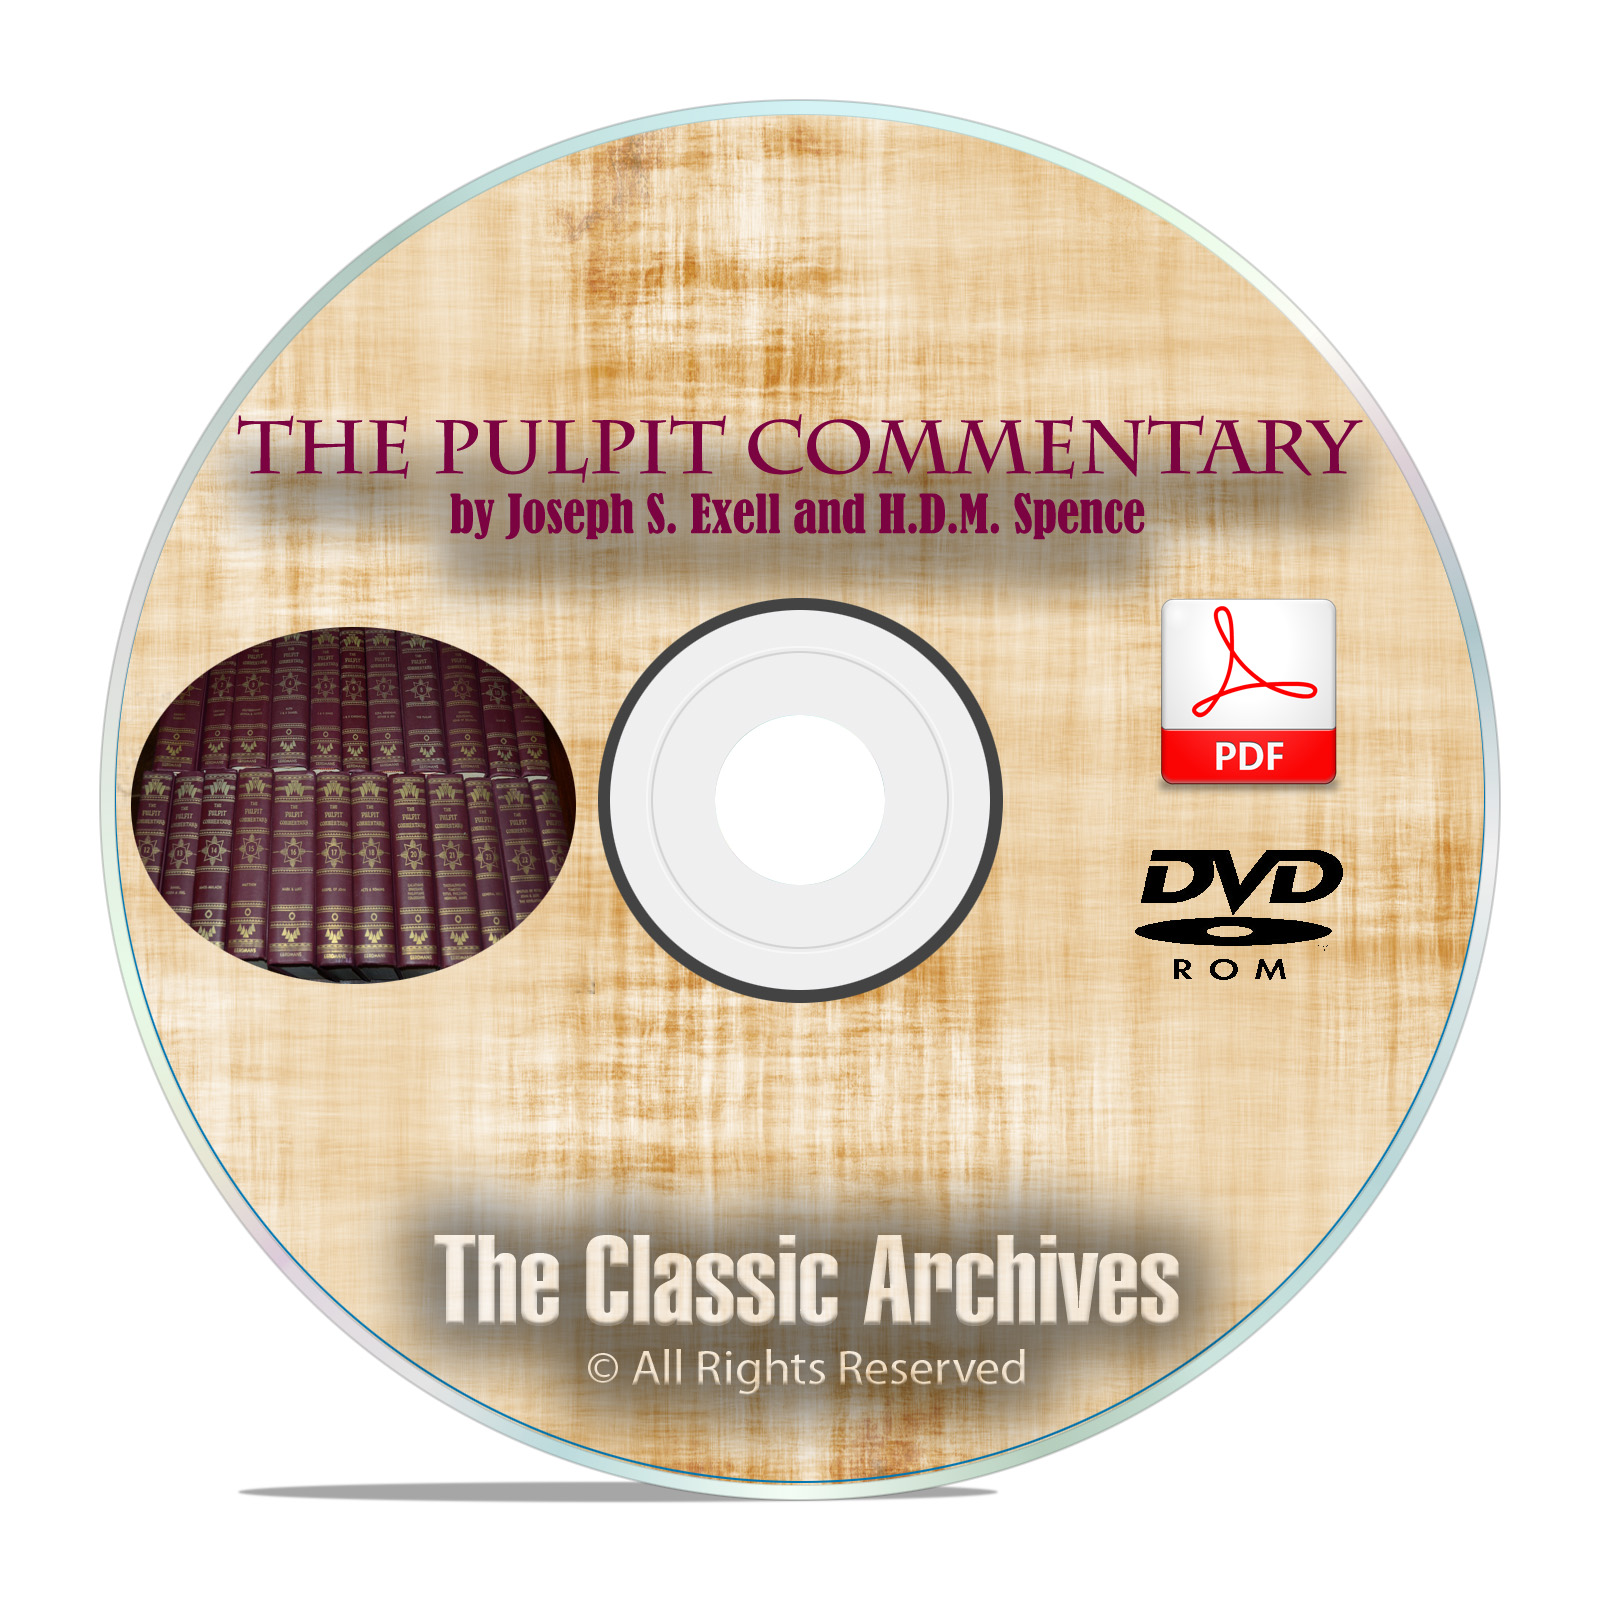 The Pulpit Commentary, Complete Full 23 Volume Set Digitized on DVD-ROM